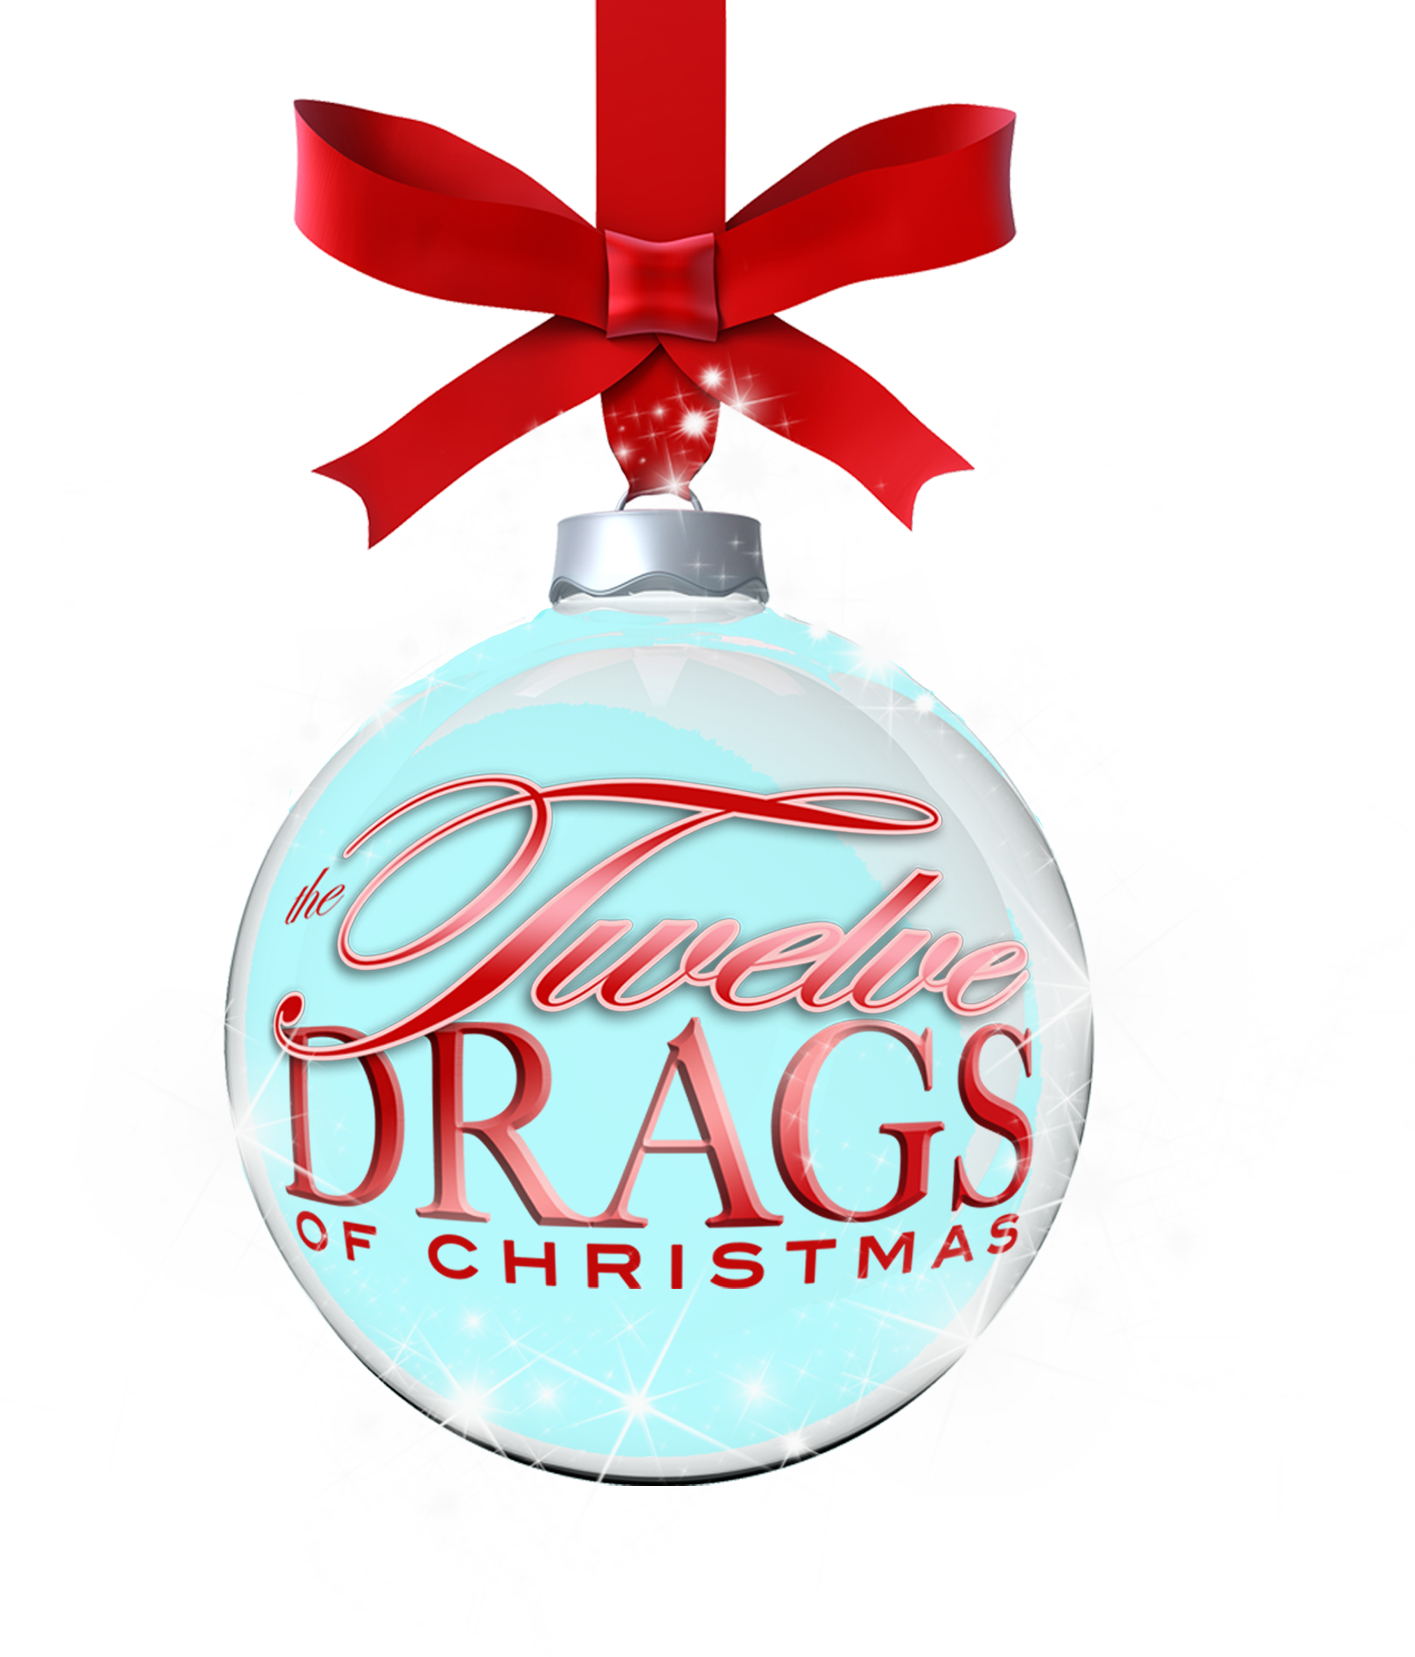 The 12 Drags of Christmas